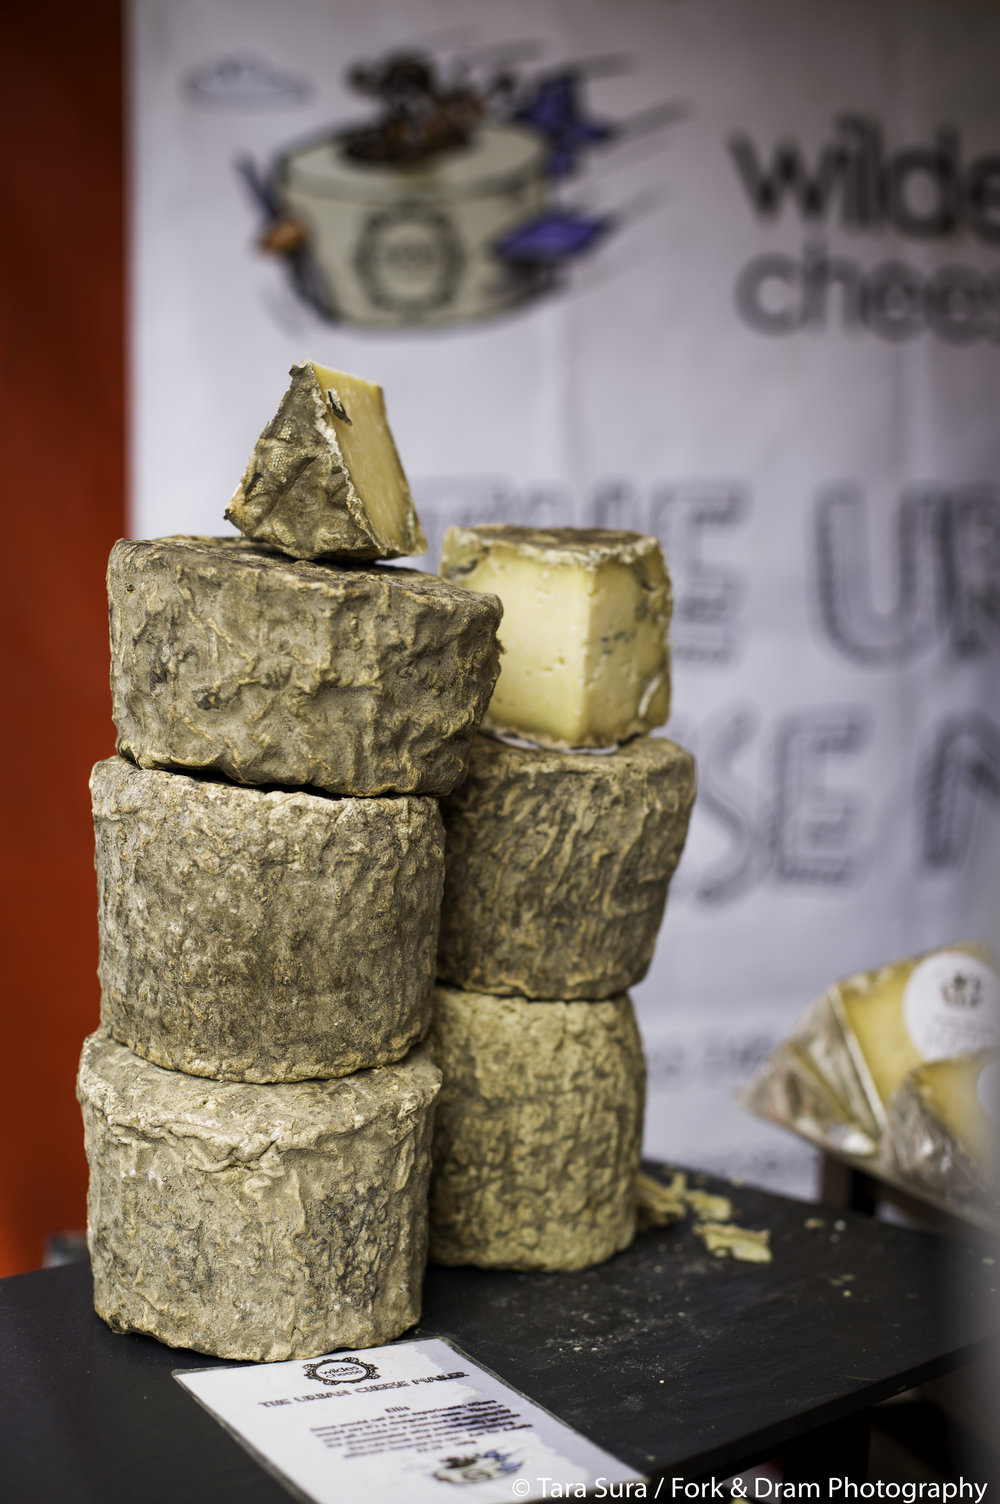 WILDE'S CHEESE The award winning urban cheesemakers of Tottenham return with their ever popular artisan cheeses https://wildescheese.co.uk/     Photo: Tara Sura/ Fork and Dram